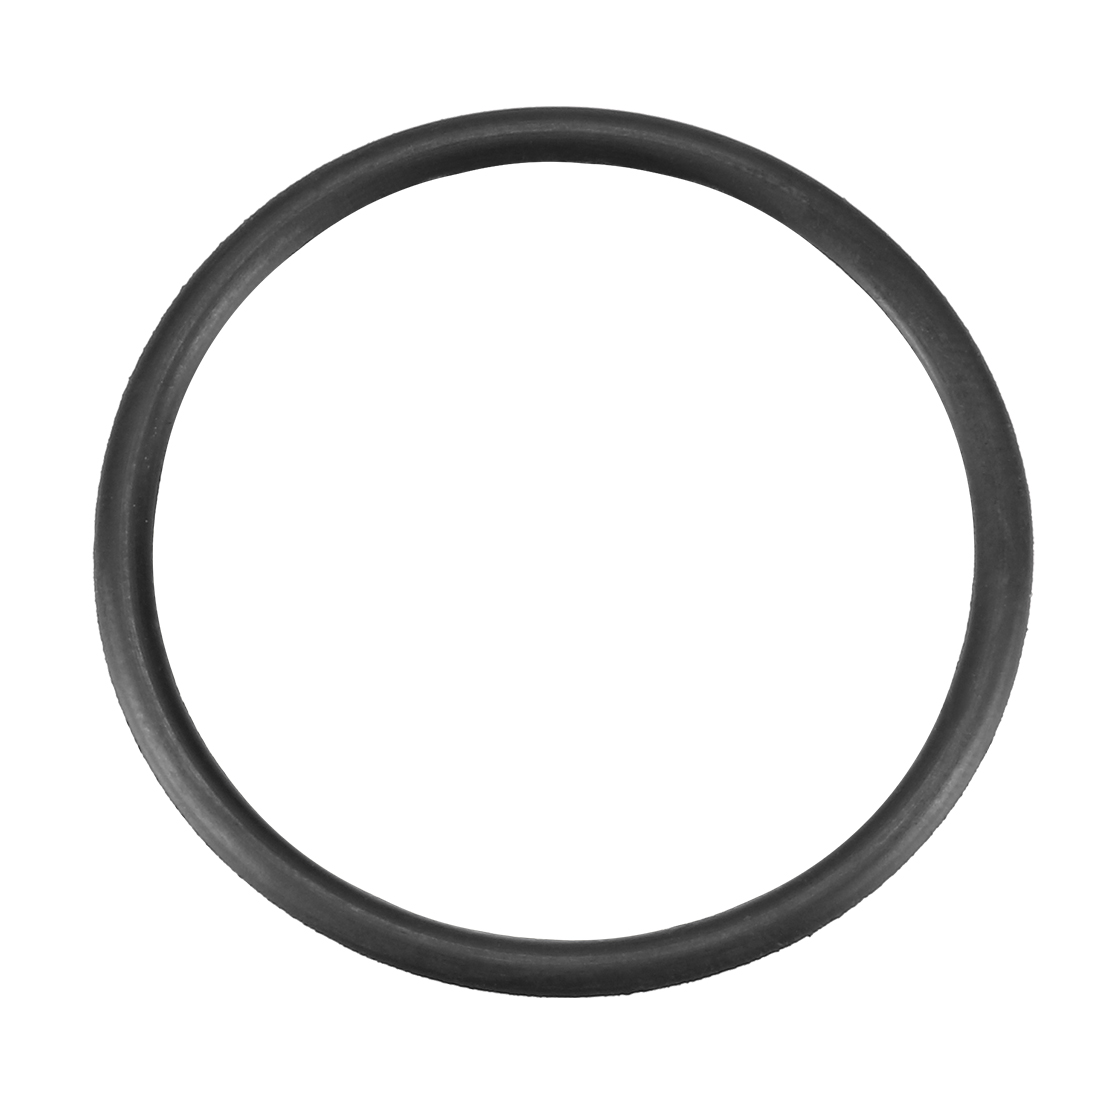 38mmx2.4mmx33.2mm Black Nitrile Rubber Sealing O Ring Seal Washer Grommets 10 Pcs